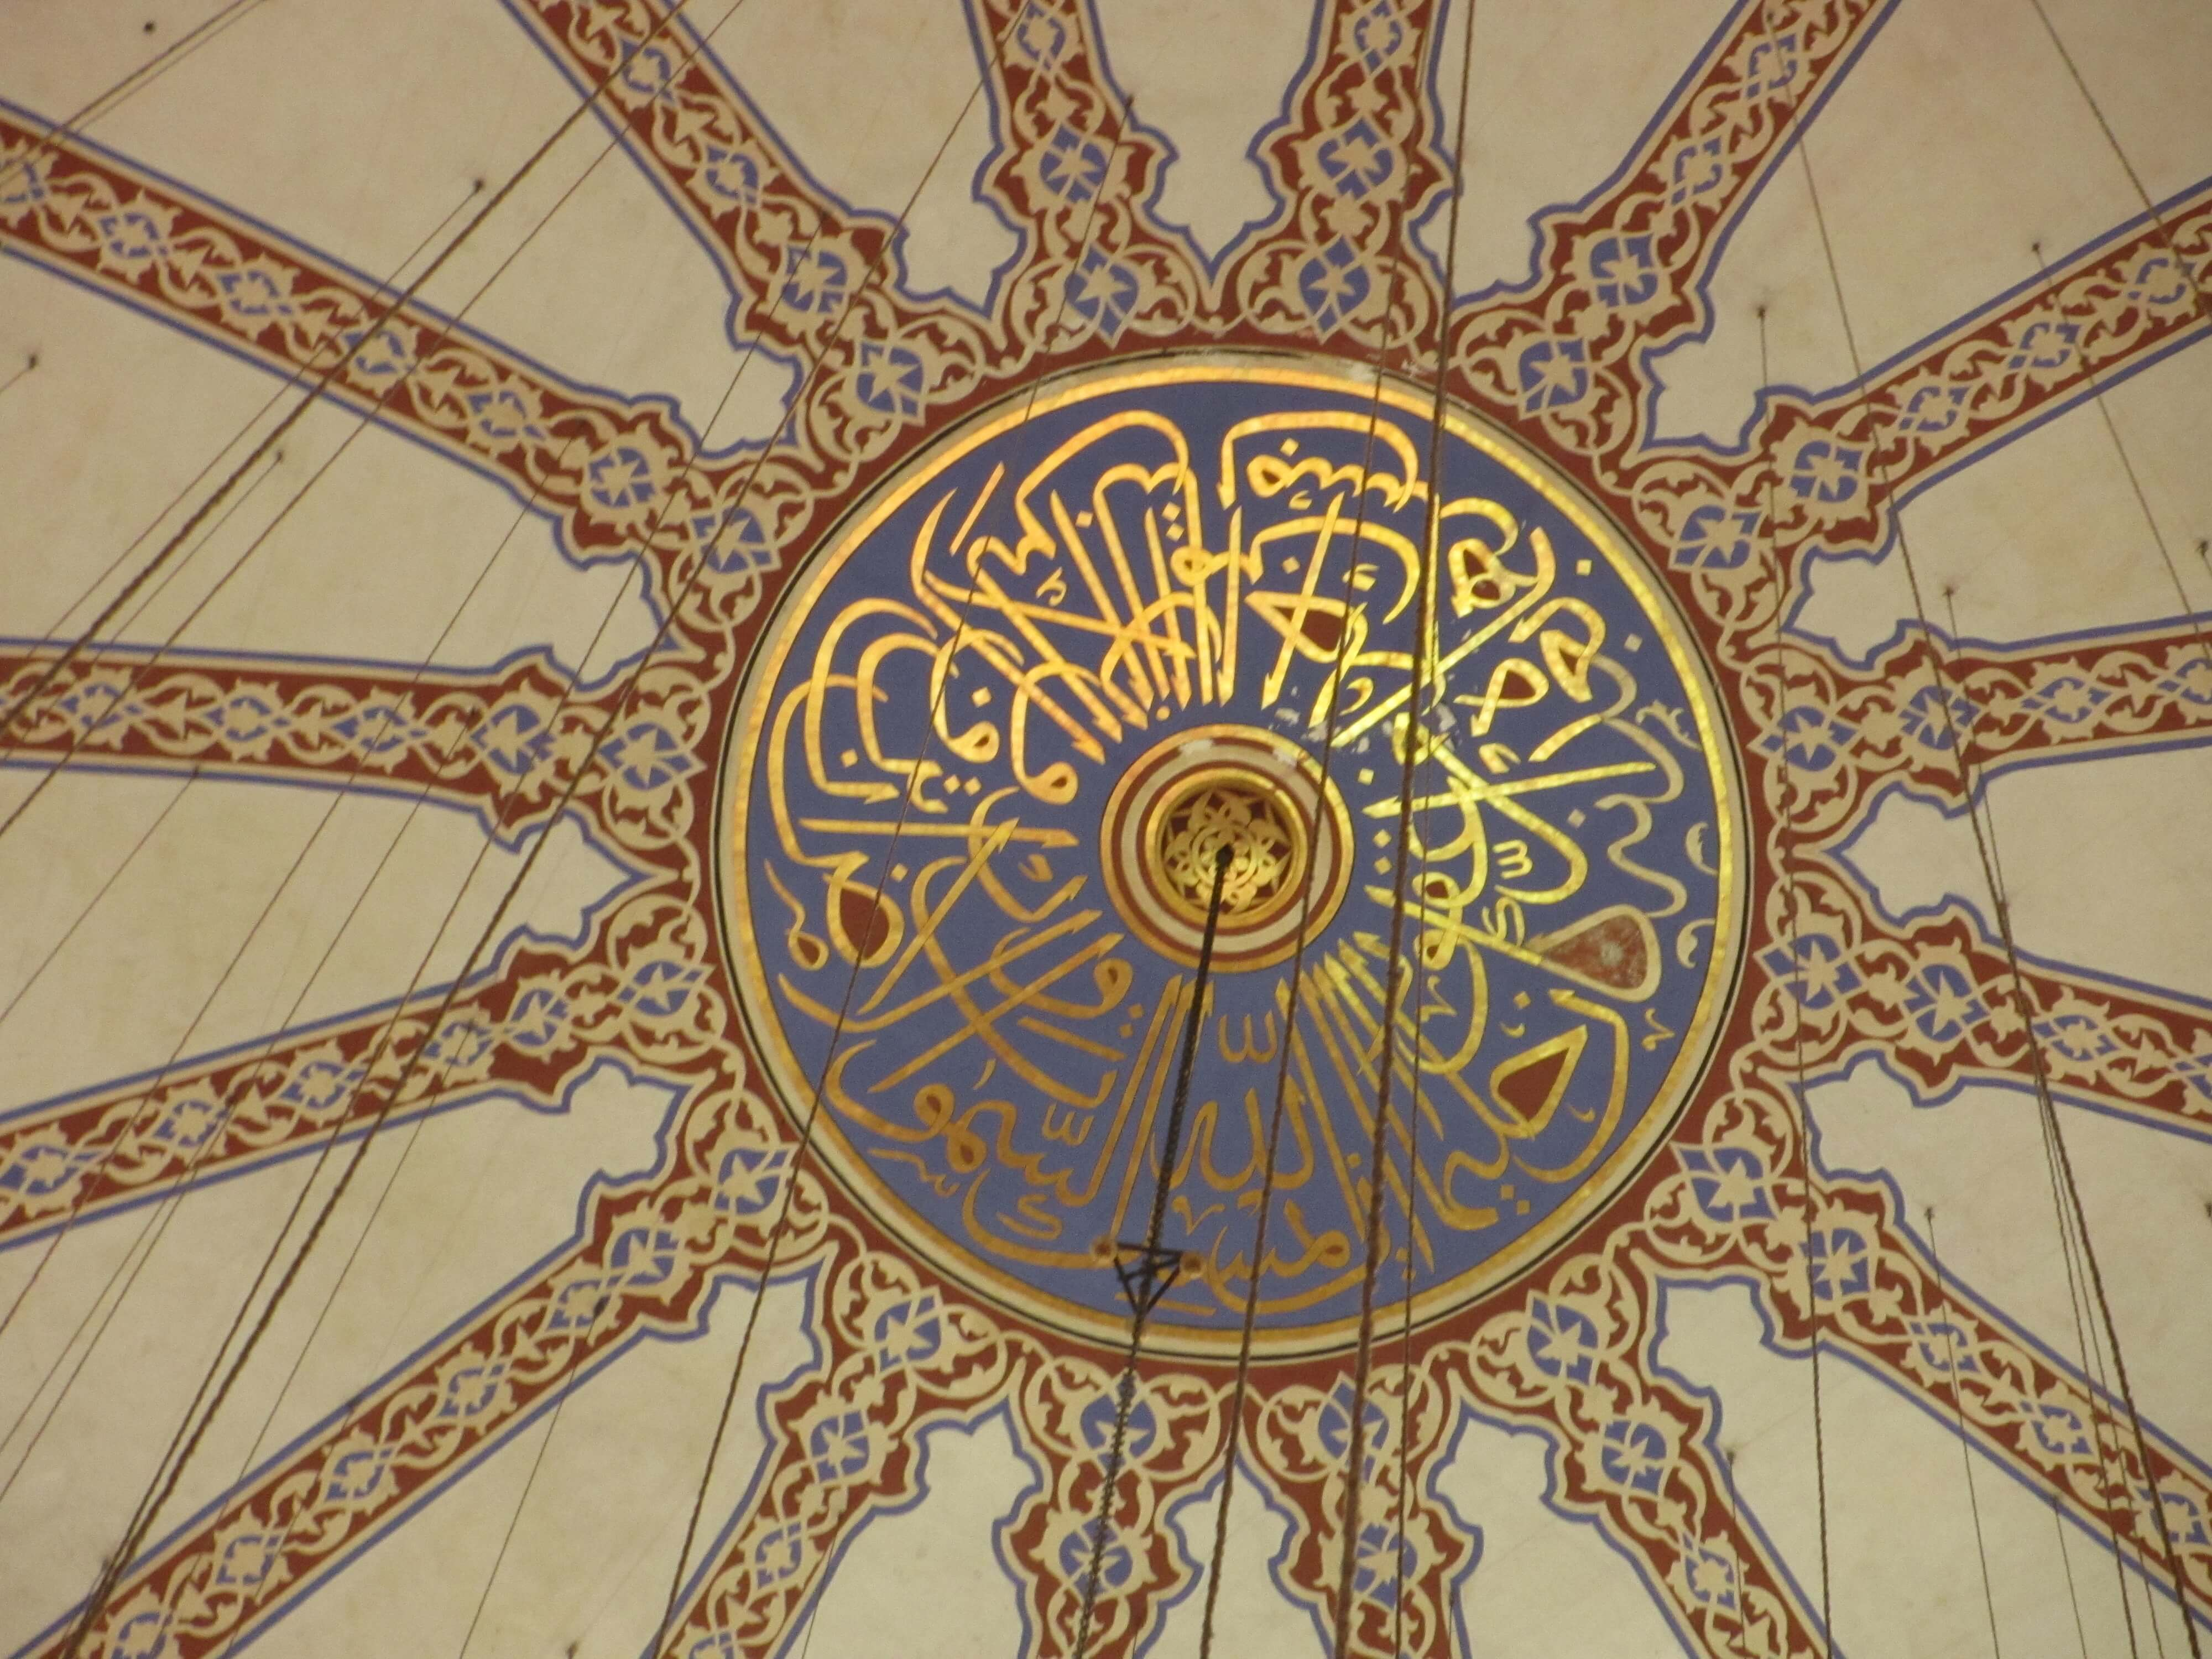 Islamic text in a blue circle surrounded by other coloured decoration